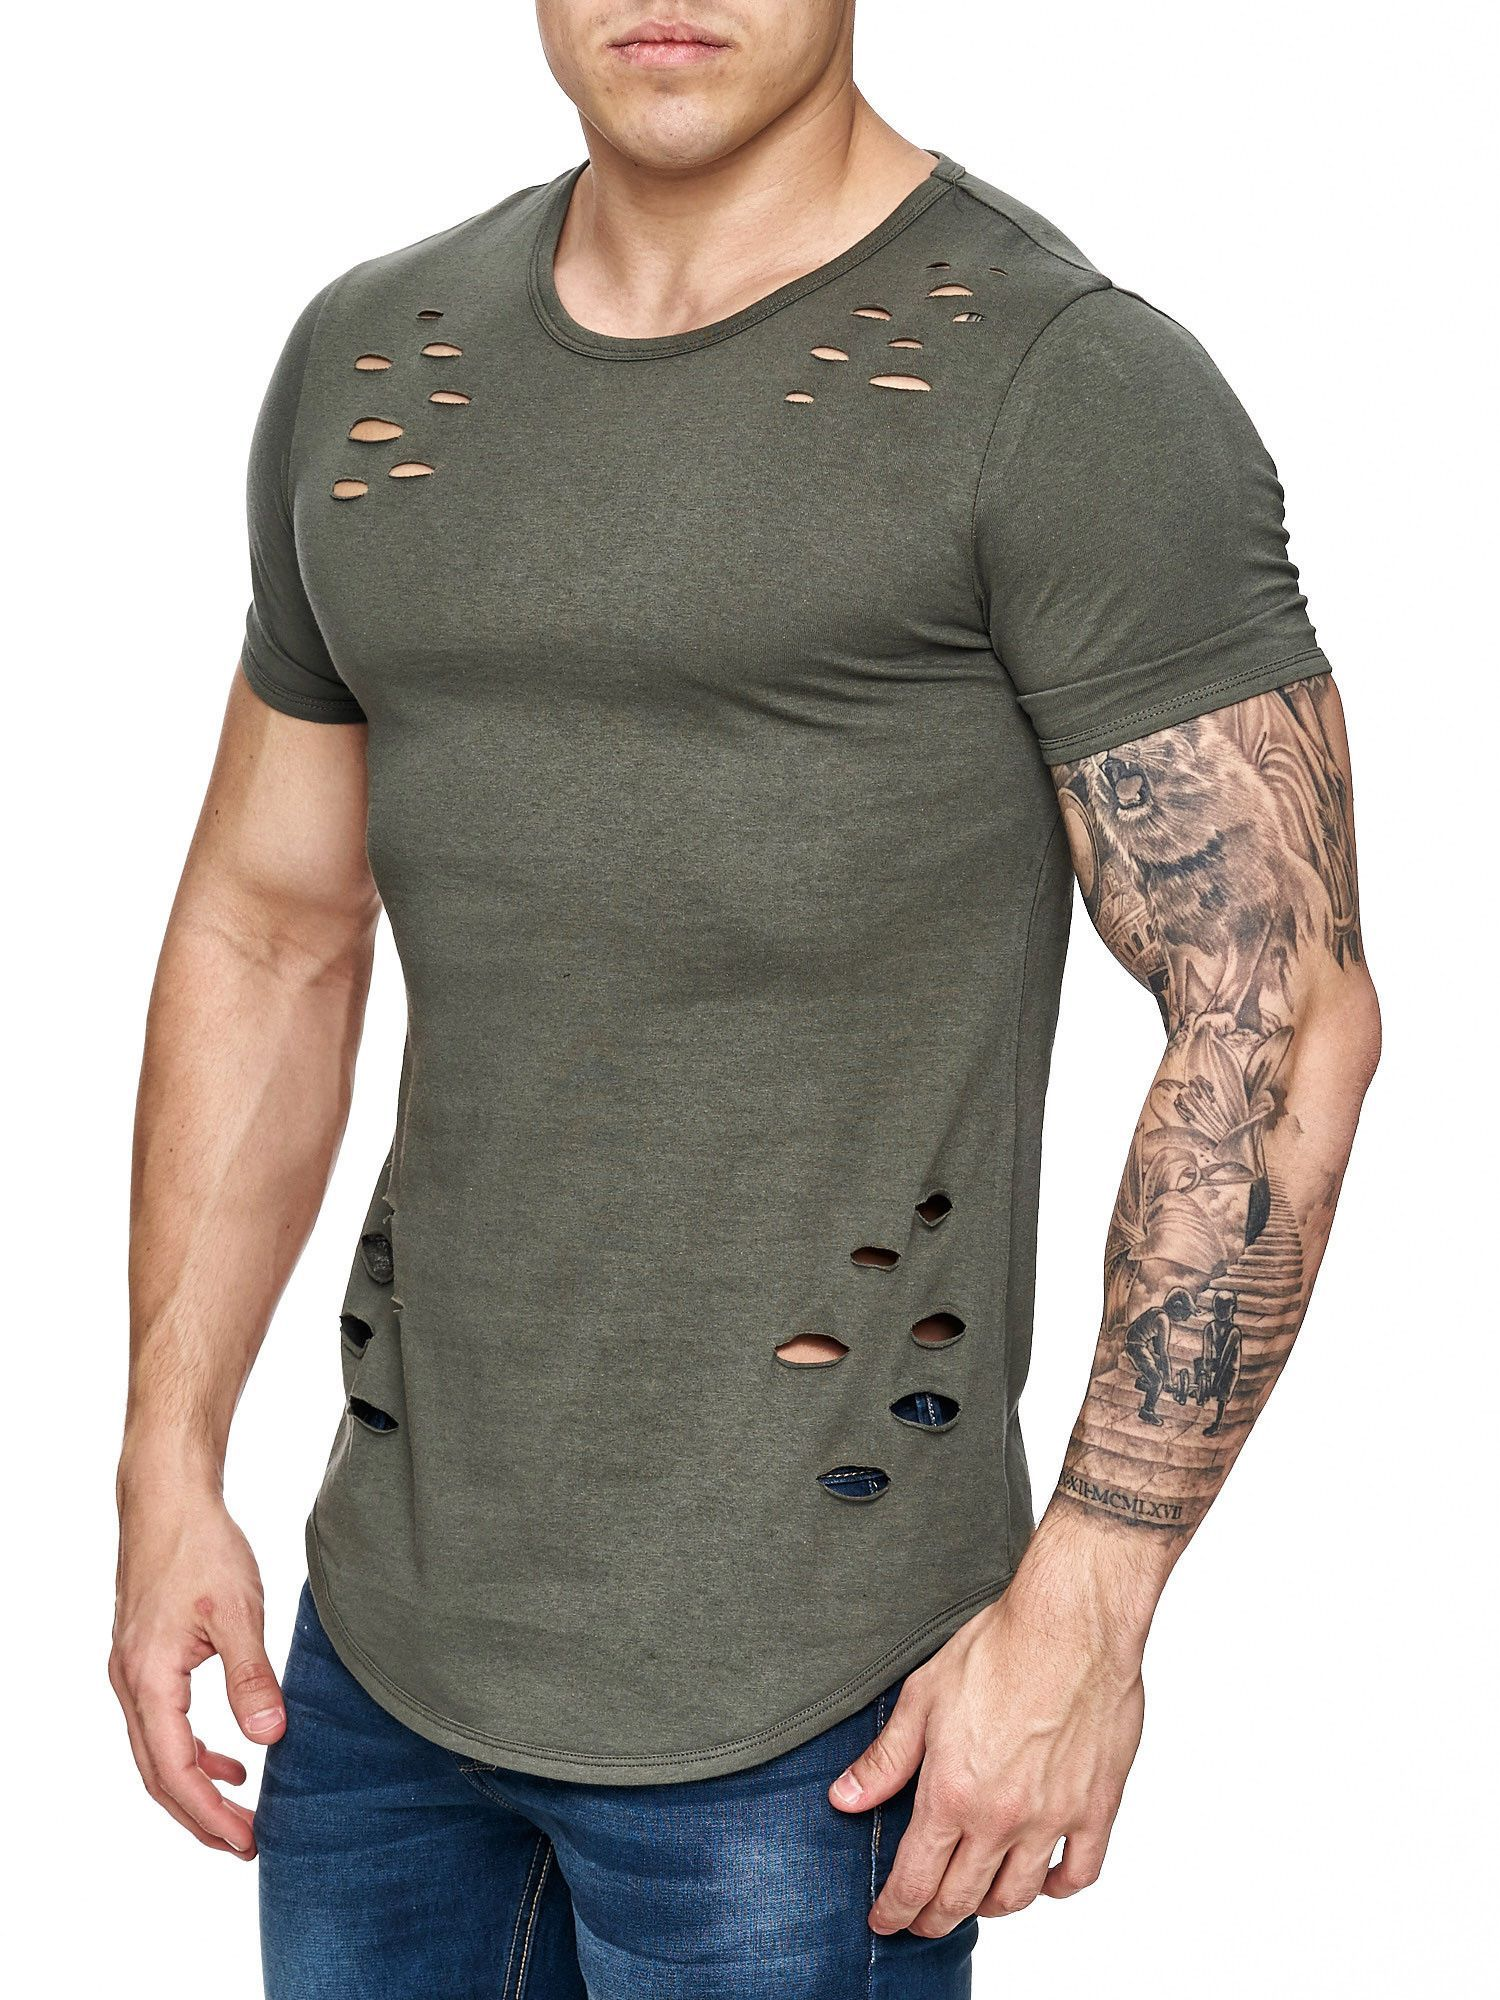 c3e291bc65d Nice slim fit   muscle fitted Ripped T-shirt IMPORTANT  Please use the size  chart to pick the correct size for you.   FORM   BODY   MUSCLE FITTED    100% ...